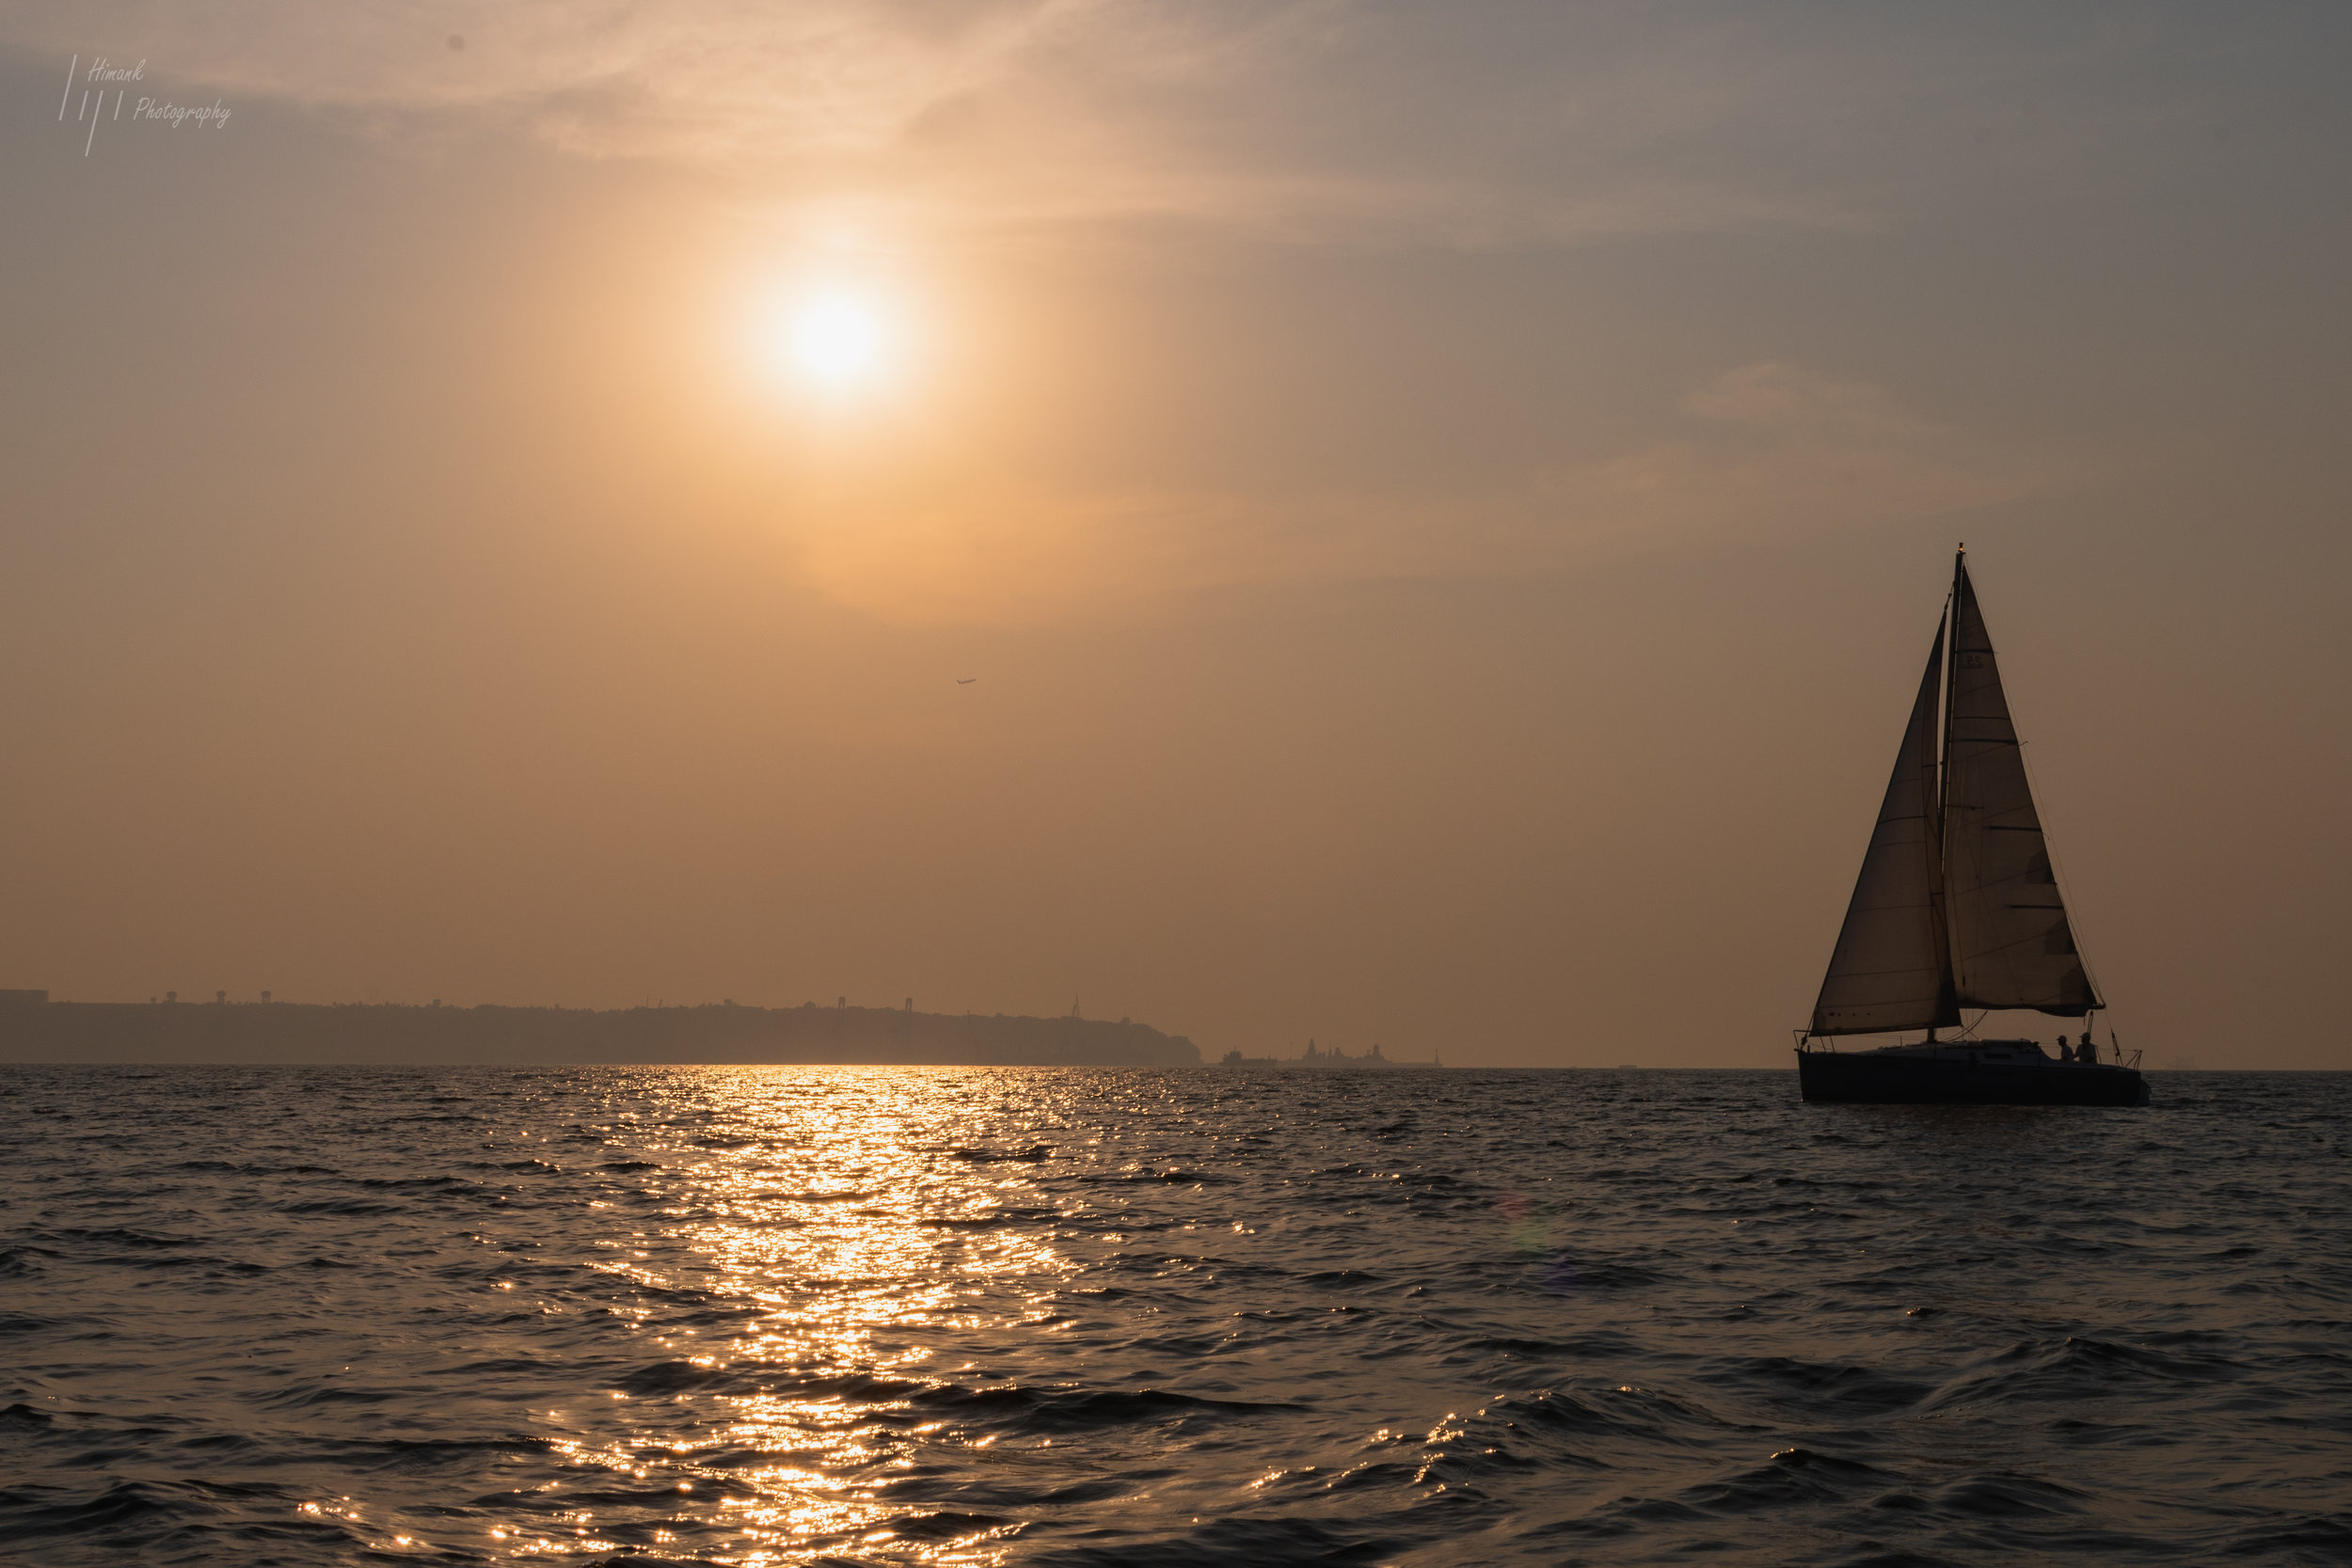 SUNset sail with BBQ | INR 3200/- per person - Kayak for half hour then chase the setting sun in a sailboat for an hour. Return to enjoy the rest of the evening over a BBQ by the beach